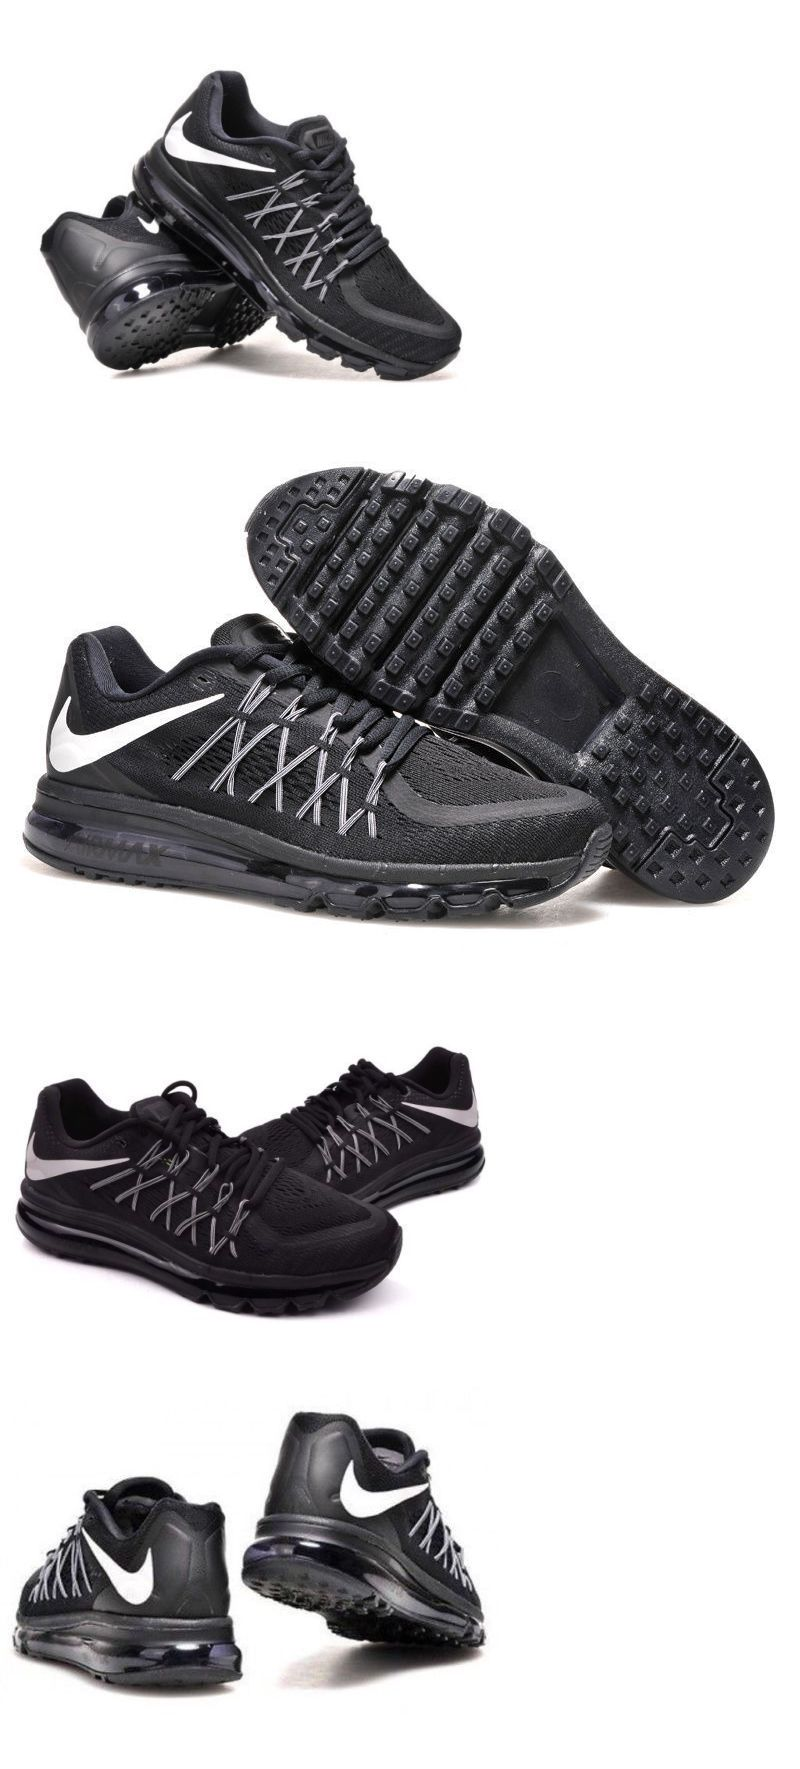 save off ef751 4c280 Men Shoes  Nike Air Max 2015 Black White 698902-001 New Mens Running Shoes  Multi Size 2017 -  BUY IT NOW ONLY   119.99 on eBay!